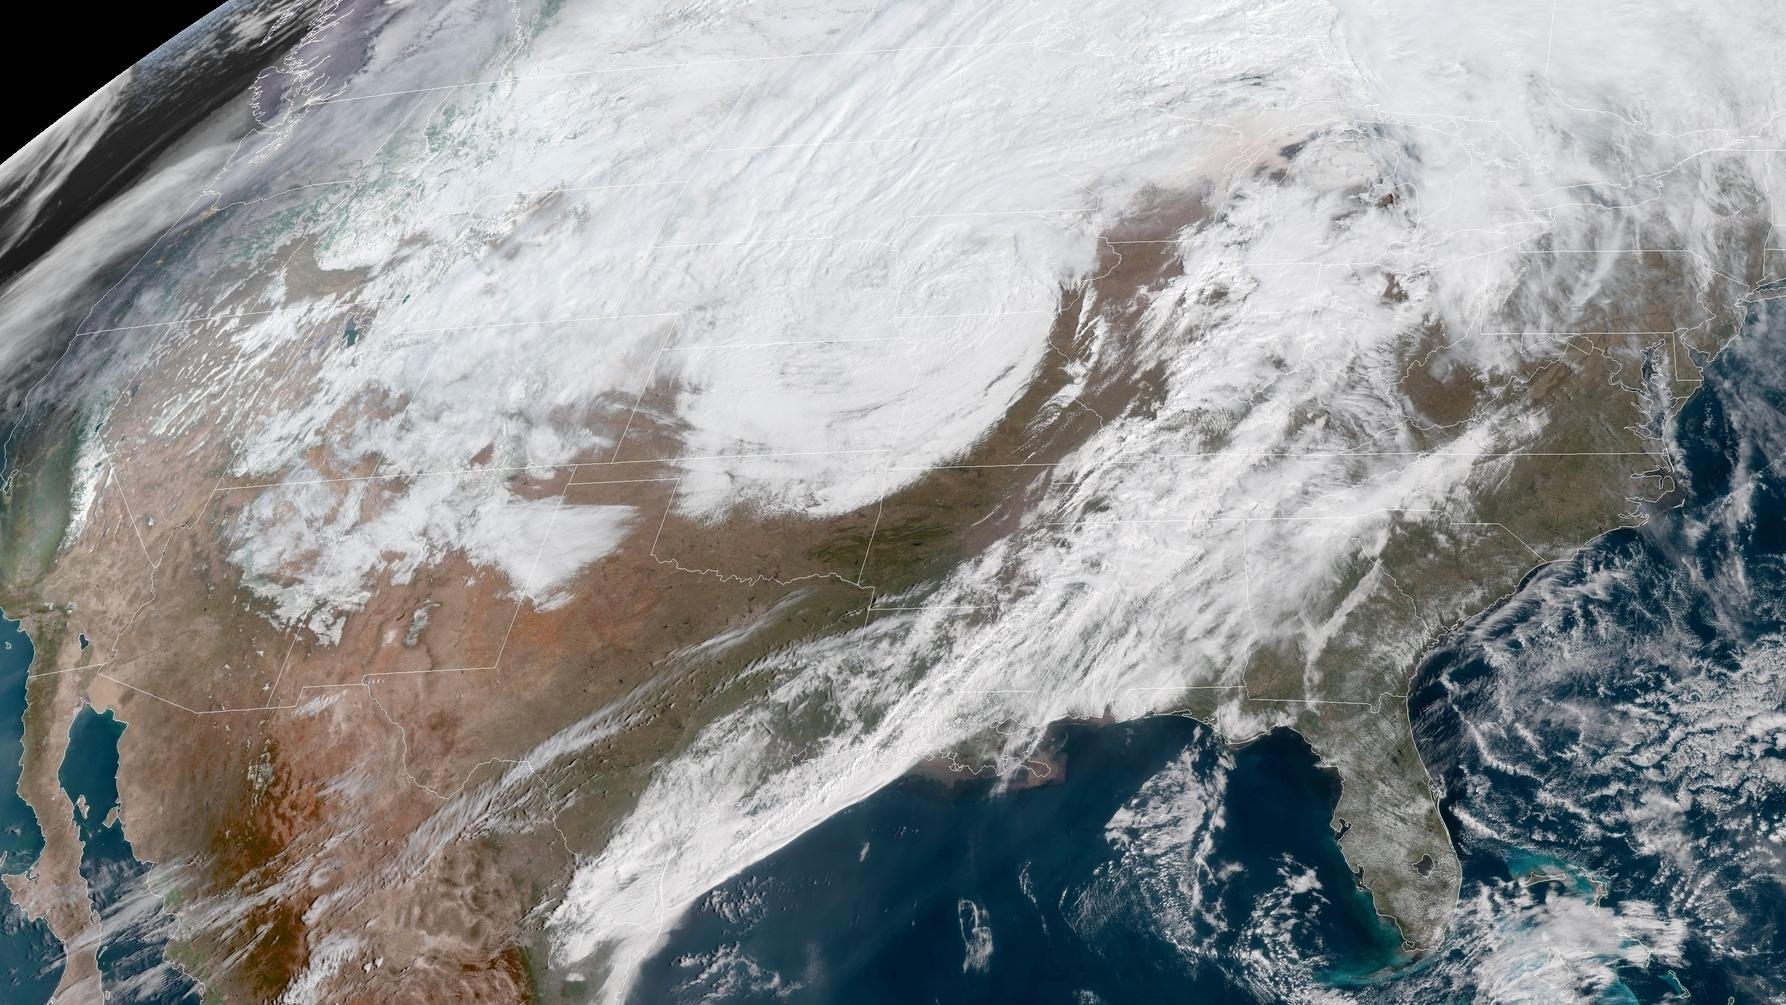 A massive late winter storm is bringing blizzard conditions to a number of central U.S. states Thursday. In affected areas many agencies are shutting down and urging people to stay off the roads